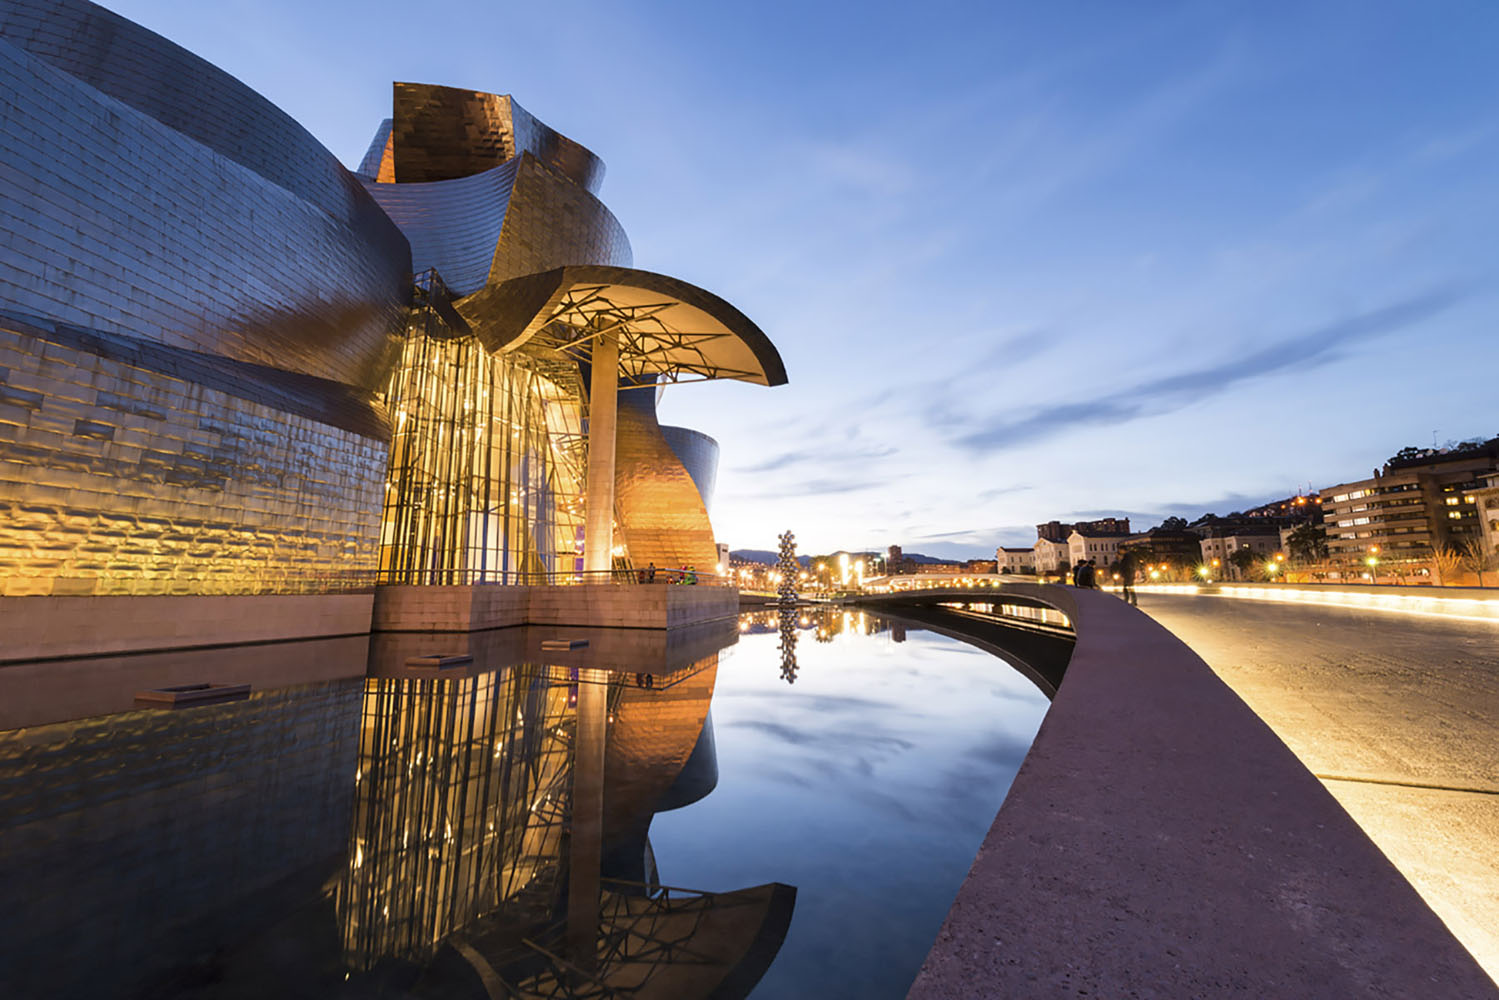 A Spanish city that should be on the bucket list of every art lover is Bilbao.